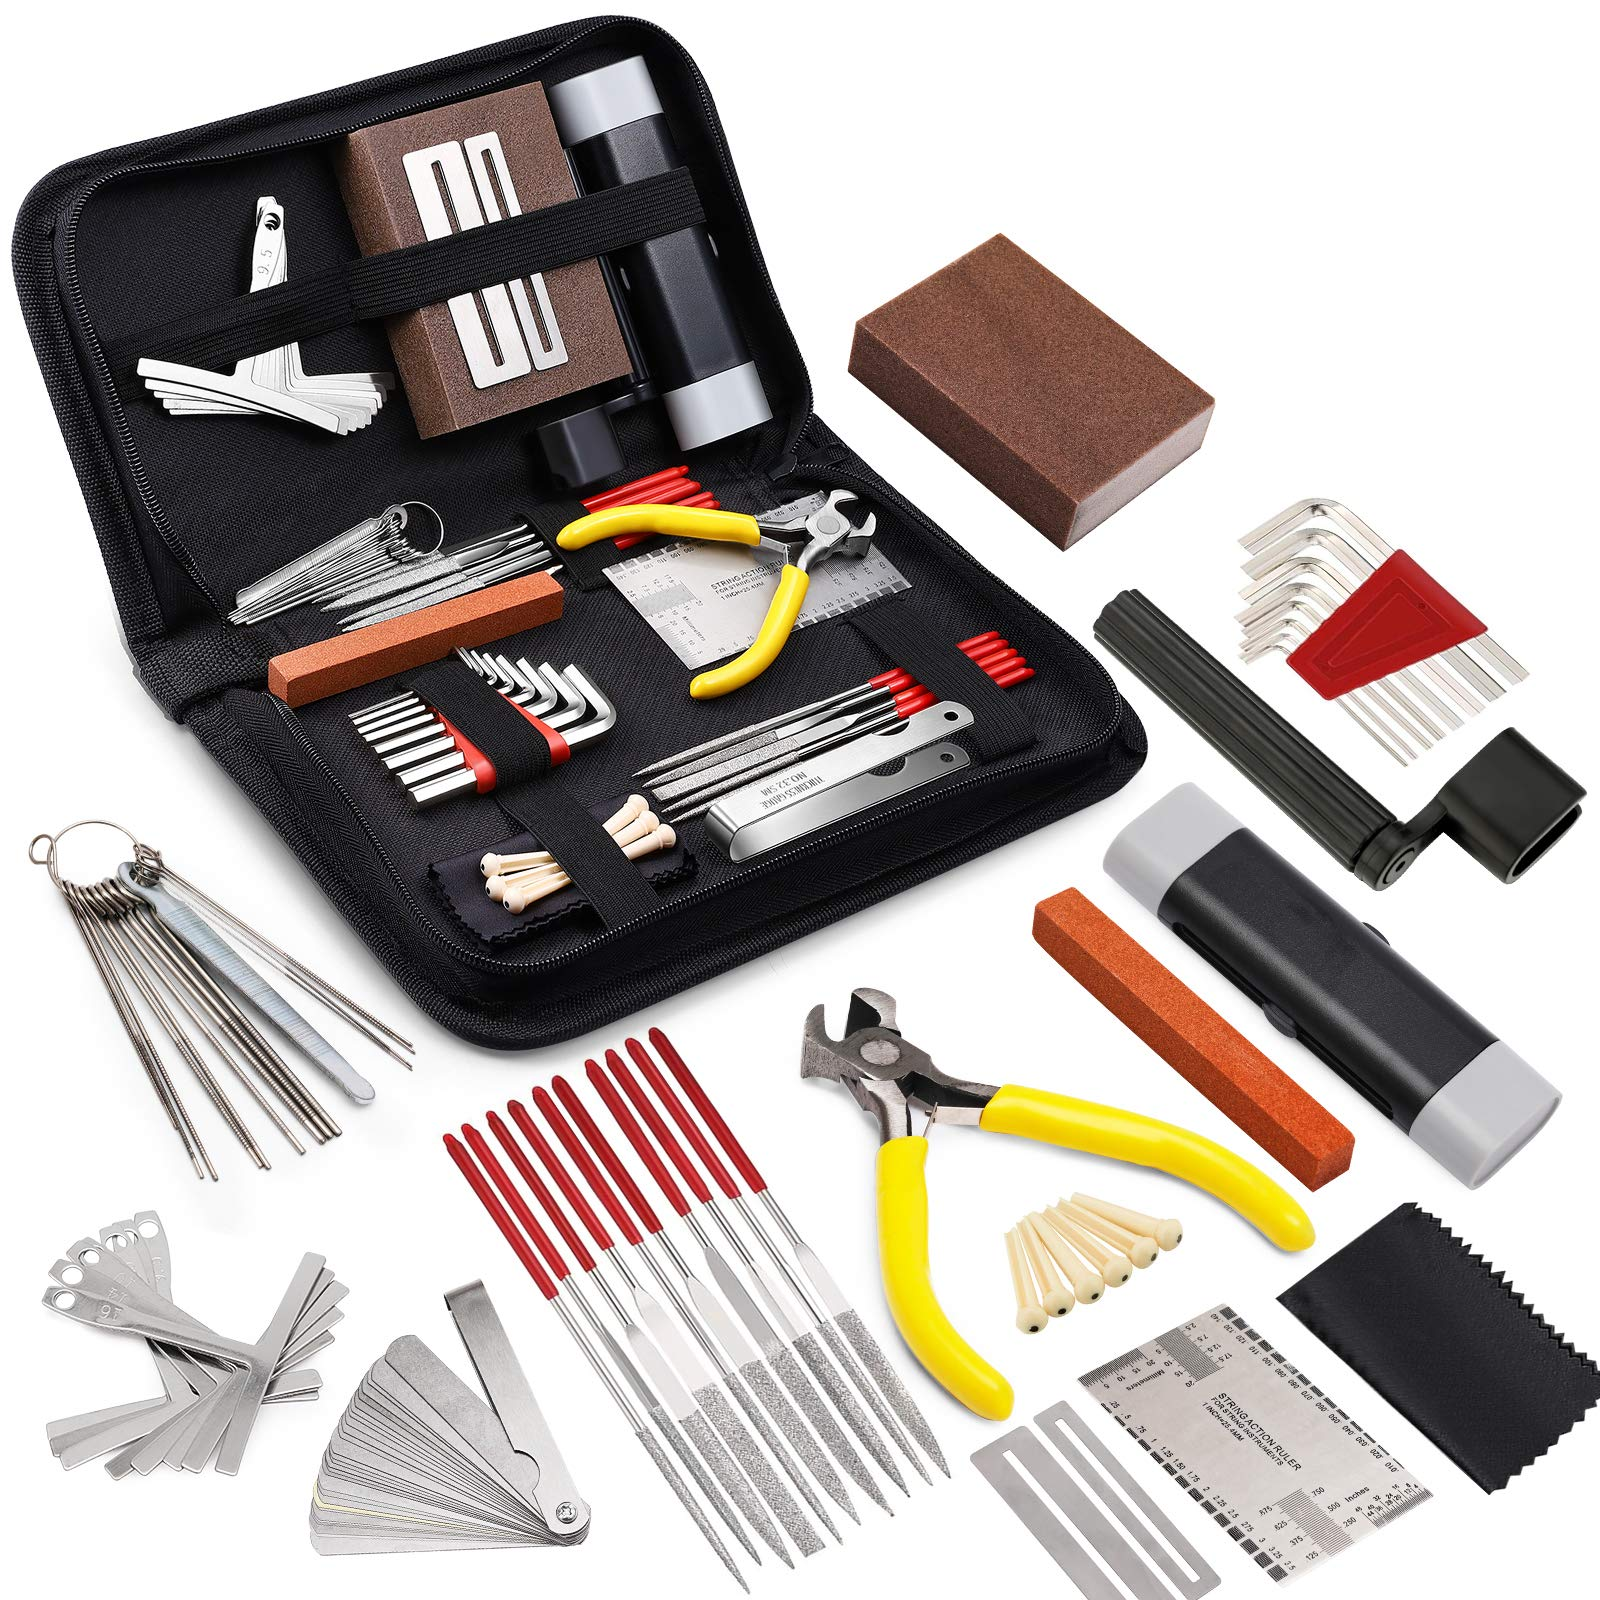 MIFOGE 45Pcs Guitar Repairing Maintenance Tool Kit with Carry Bag Large Care Set of Tools For Acoustic Guitar Electric guitar Ukulele Bass Banjo,Perfect Gift for Music or String Instrument Enthusiast